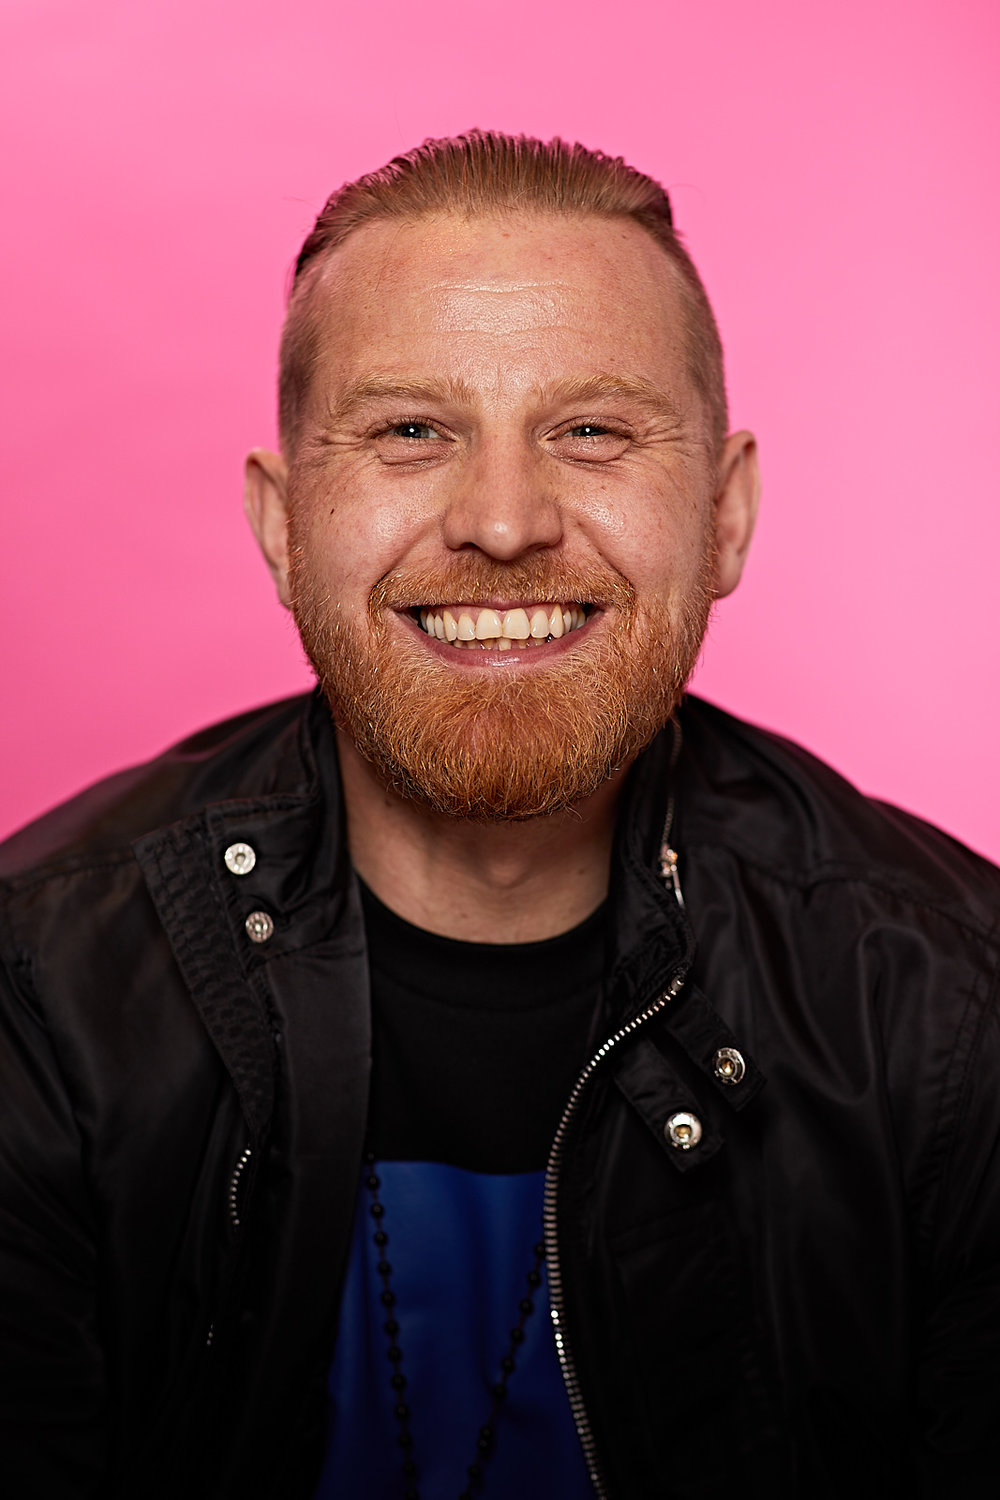 """Founder JP McCormack explains... - """"We just want to bring good vibes no matter where we go, whether it's a market, wedding, party or your place of work. The aim is for our events to be open to absolutely everyone, enjoying amazing vegan food, drink and artisan products, making it an ethical shopping experience also. We also love being able to educate and talk to many people about the benefits of a plant-based lifestyle; and all in a friendly and loving environment.Making sure our markets are affordable for traders is very important to us, and we have given over 8 debuts to new vegan start-ups already. We are also proud to say, the company itself is 100% vegan owned and run.We have big plans this year and it's not just the UK, events also planned for Europe, USA, Australia and more, so keep an eye out and kindly follow and support us on our journey."""""""